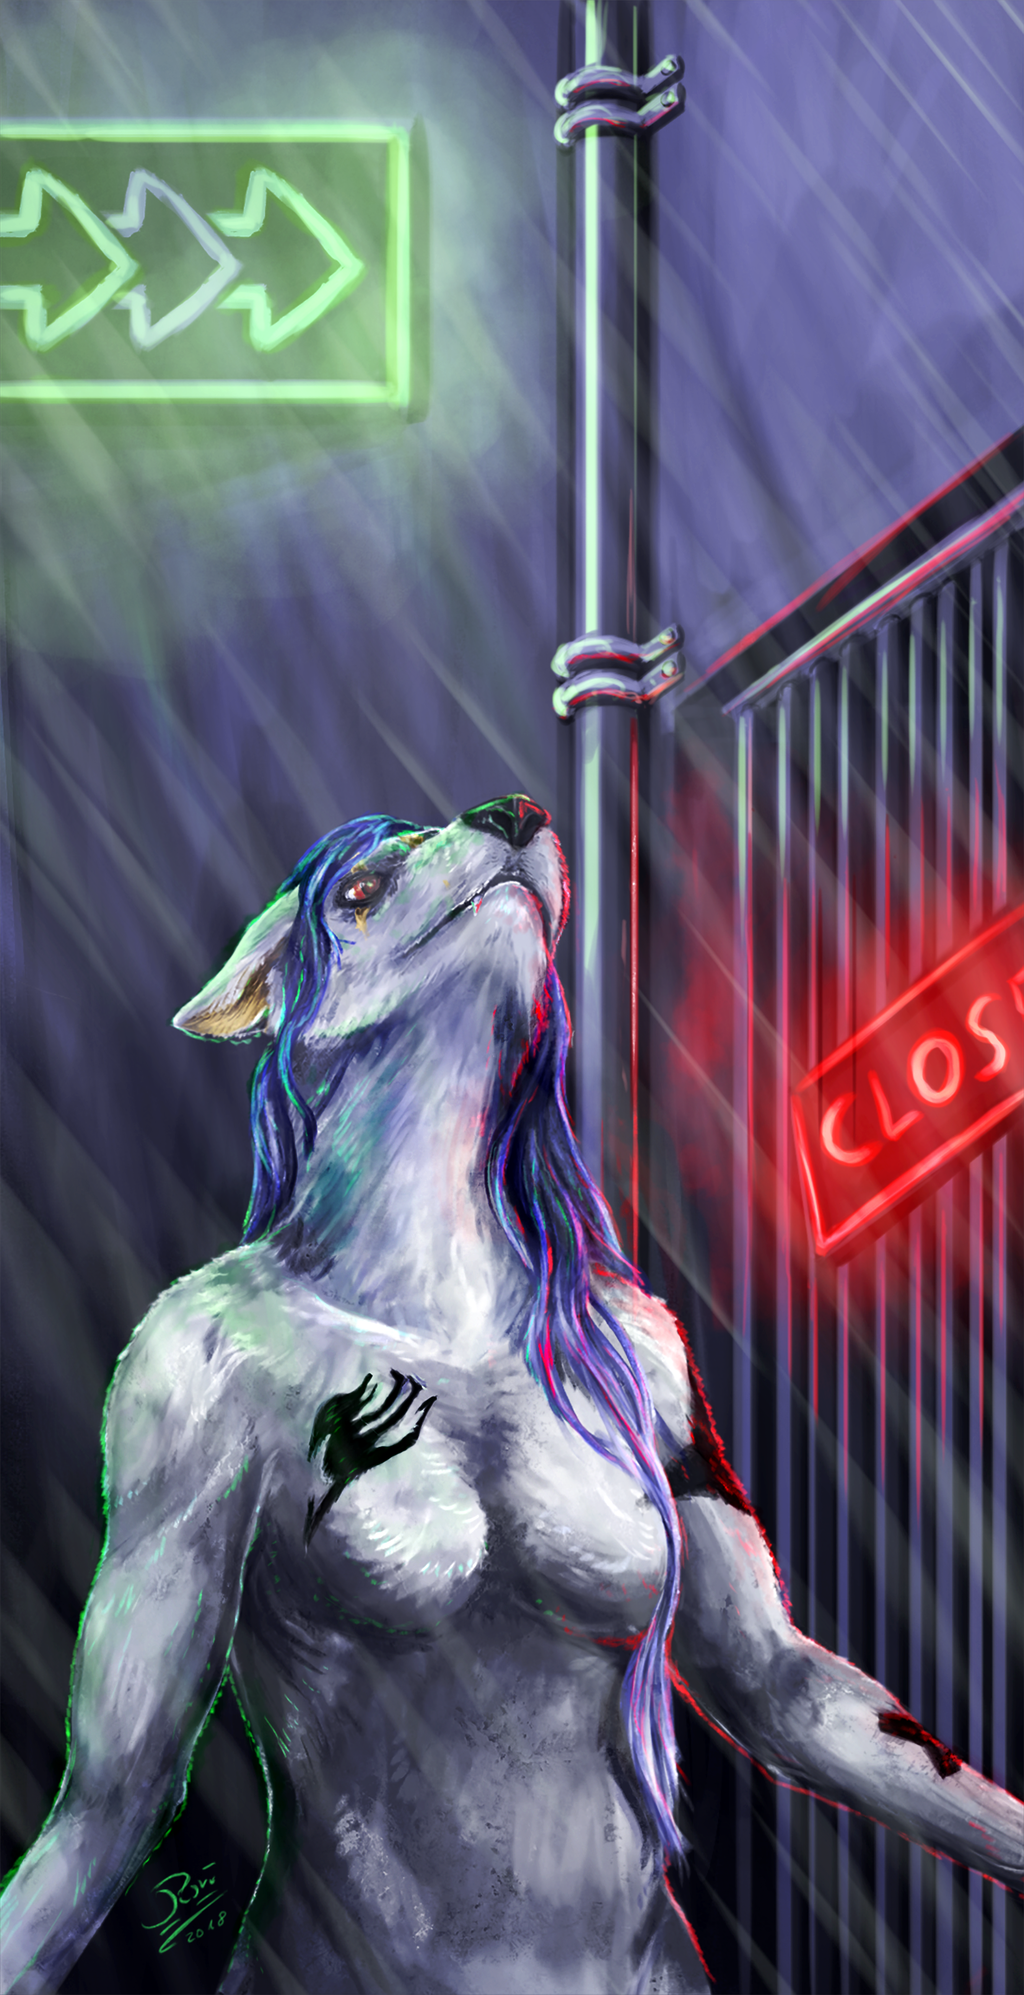 [YCH] In the rain